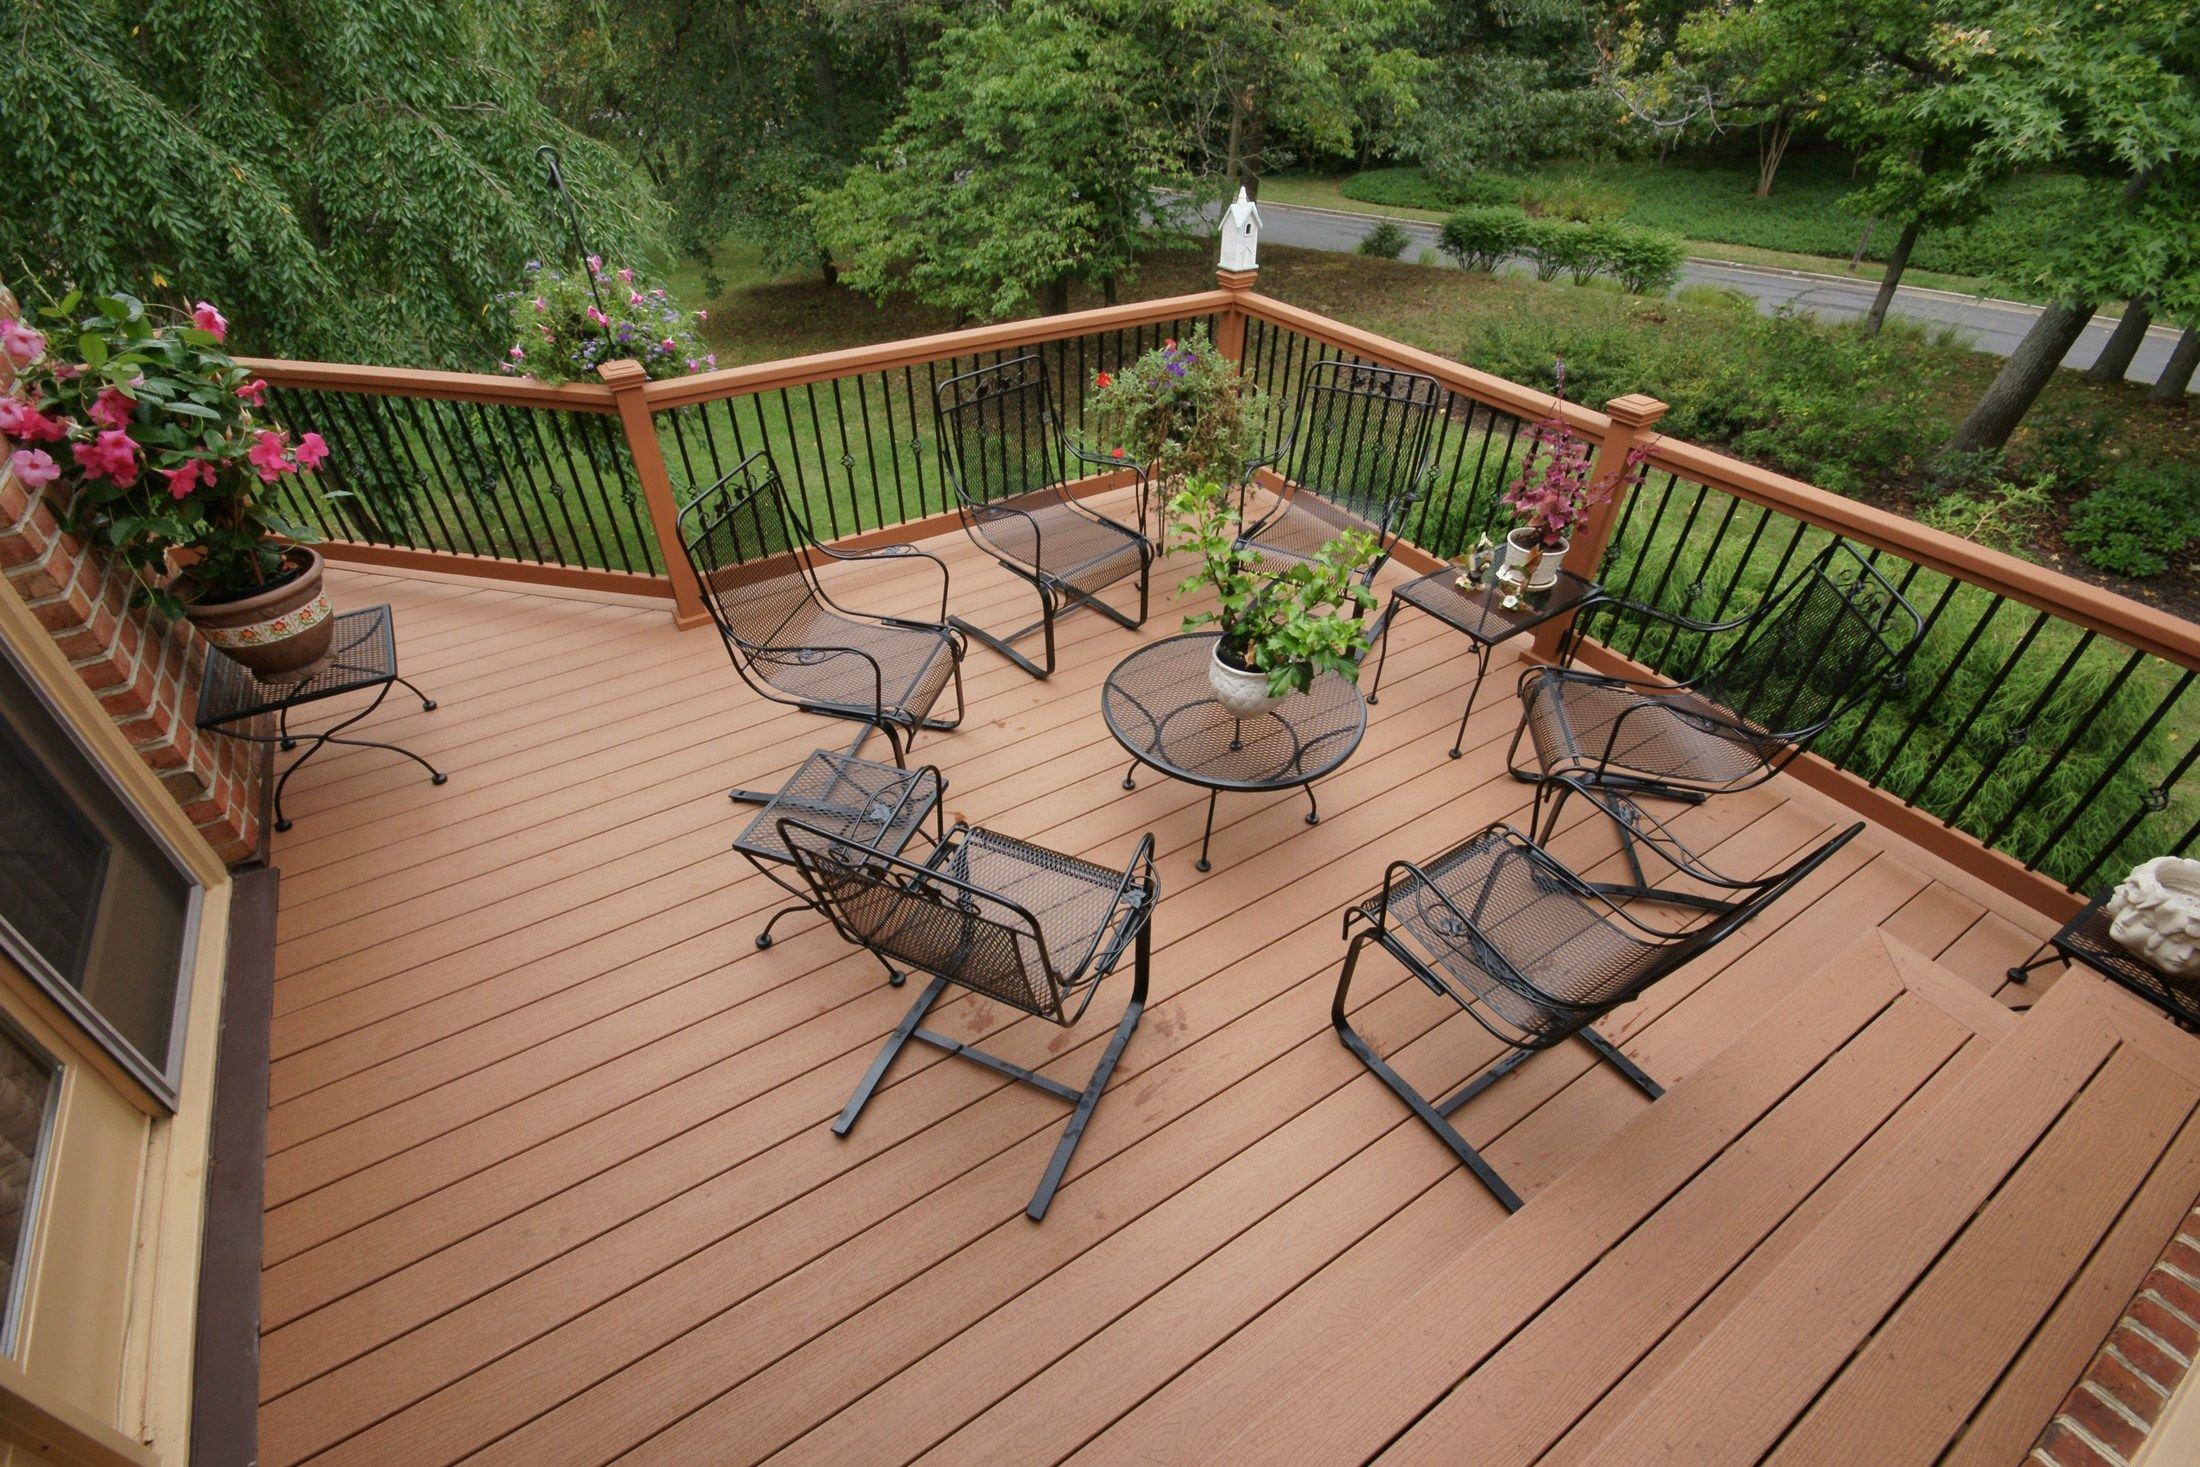 South River Cedar deck - Picture 1503